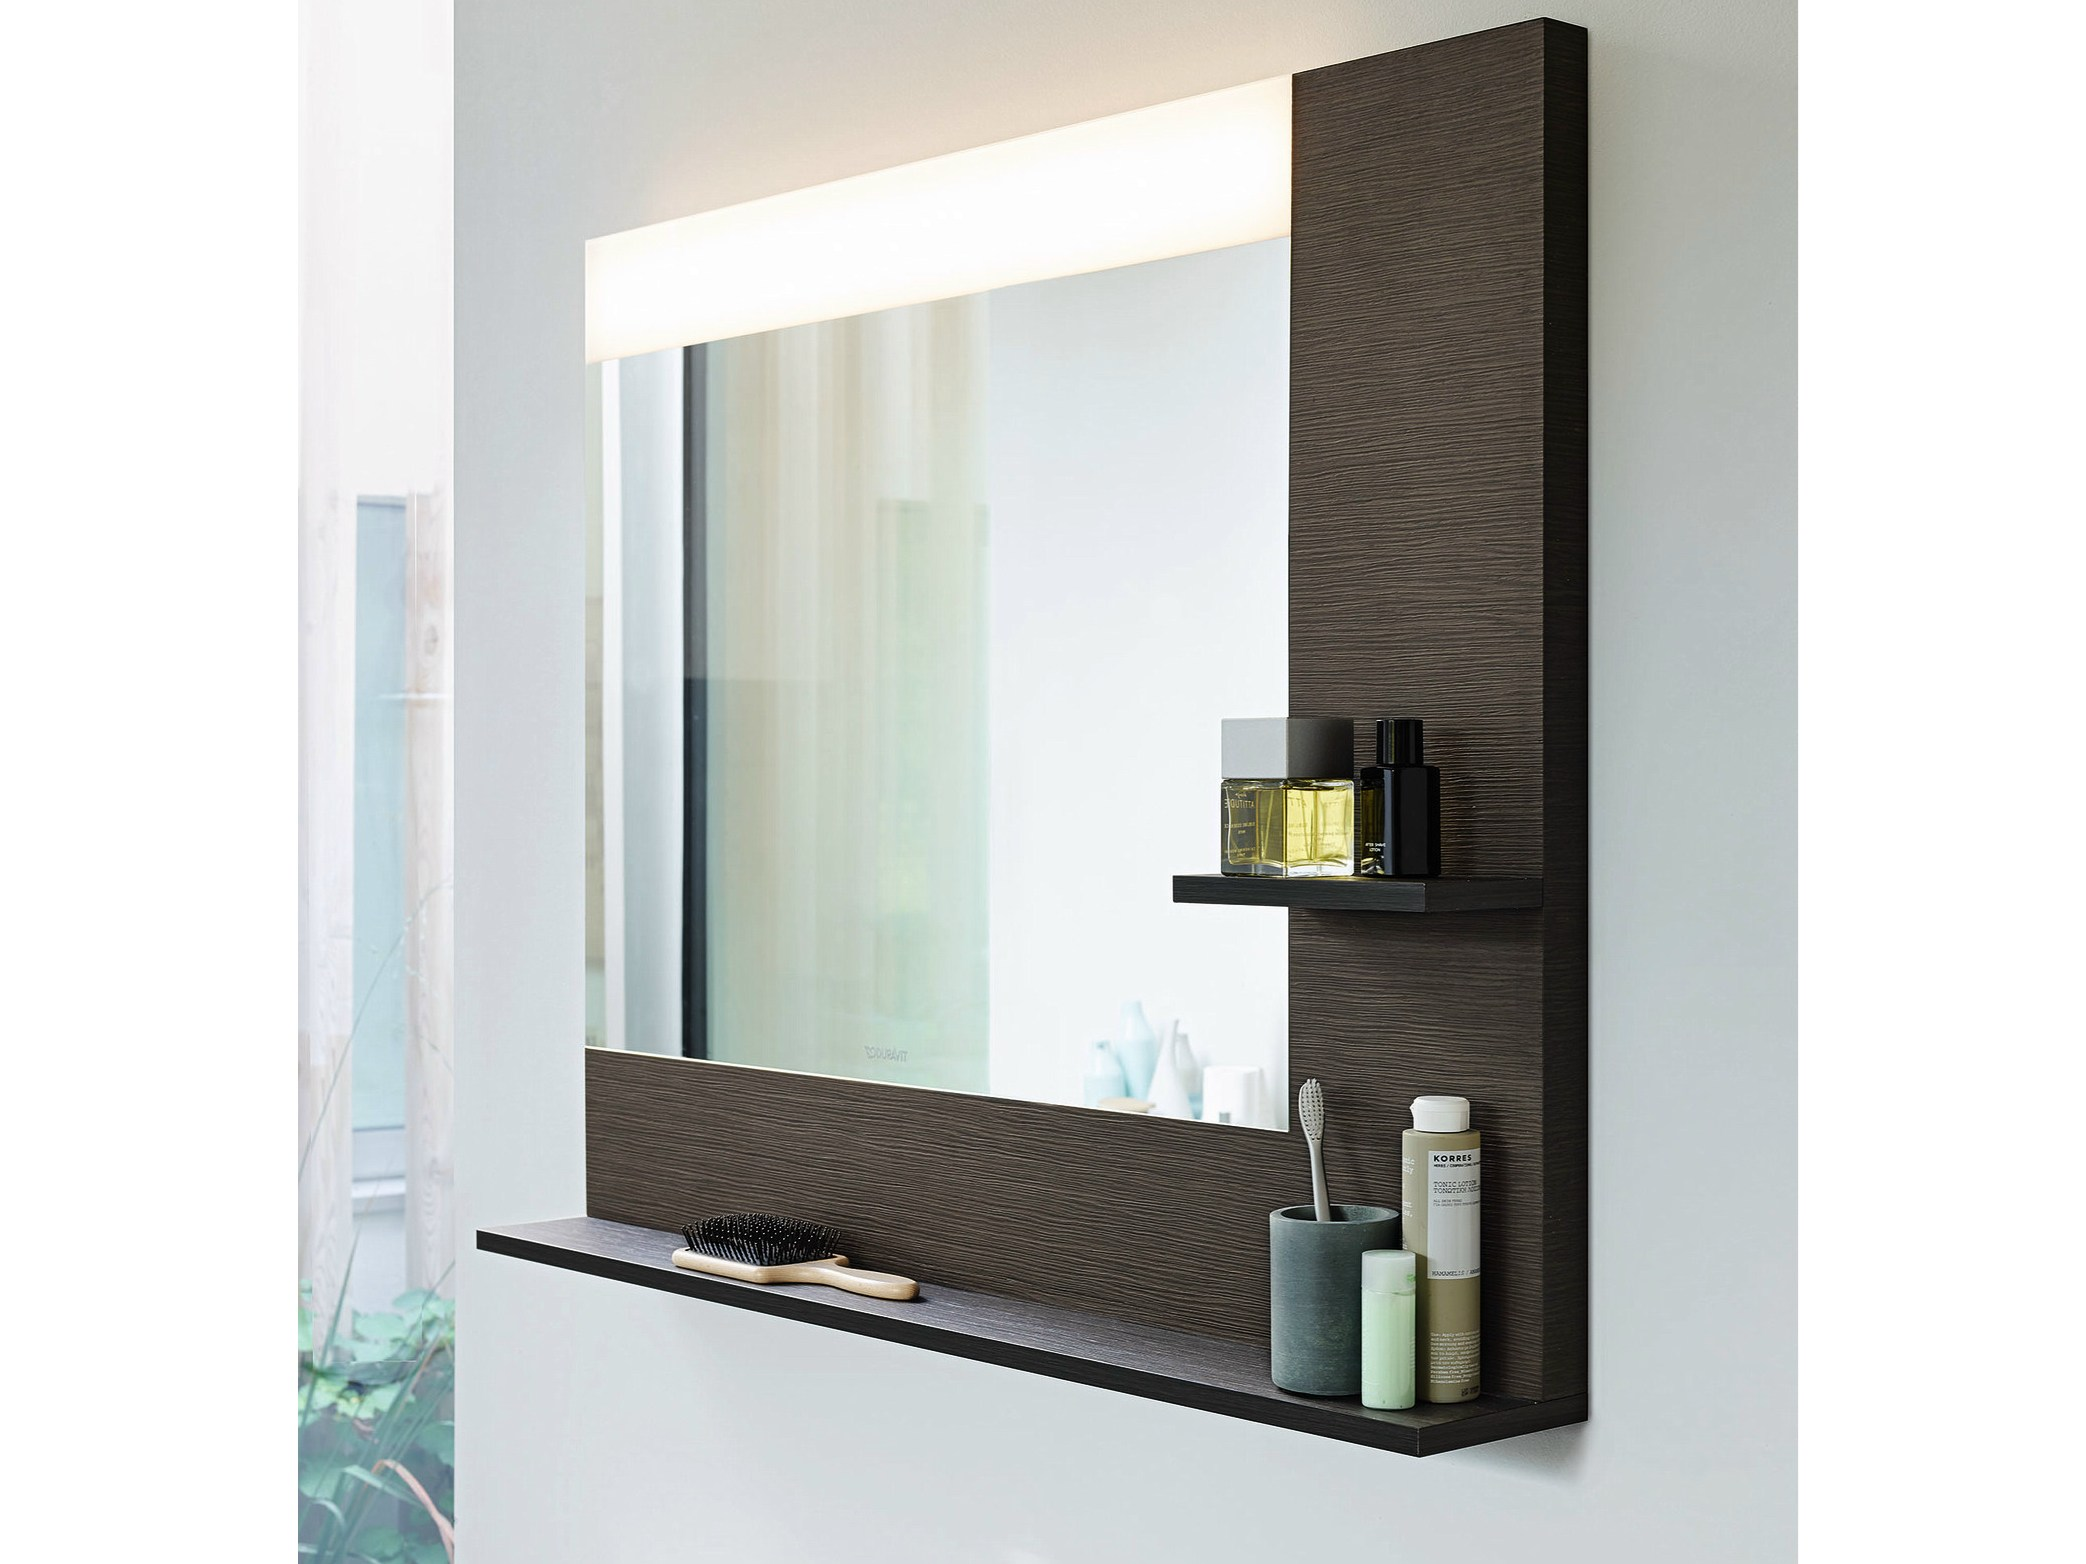 vero miroir avec clairage int gr by duravit design kurt. Black Bedroom Furniture Sets. Home Design Ideas